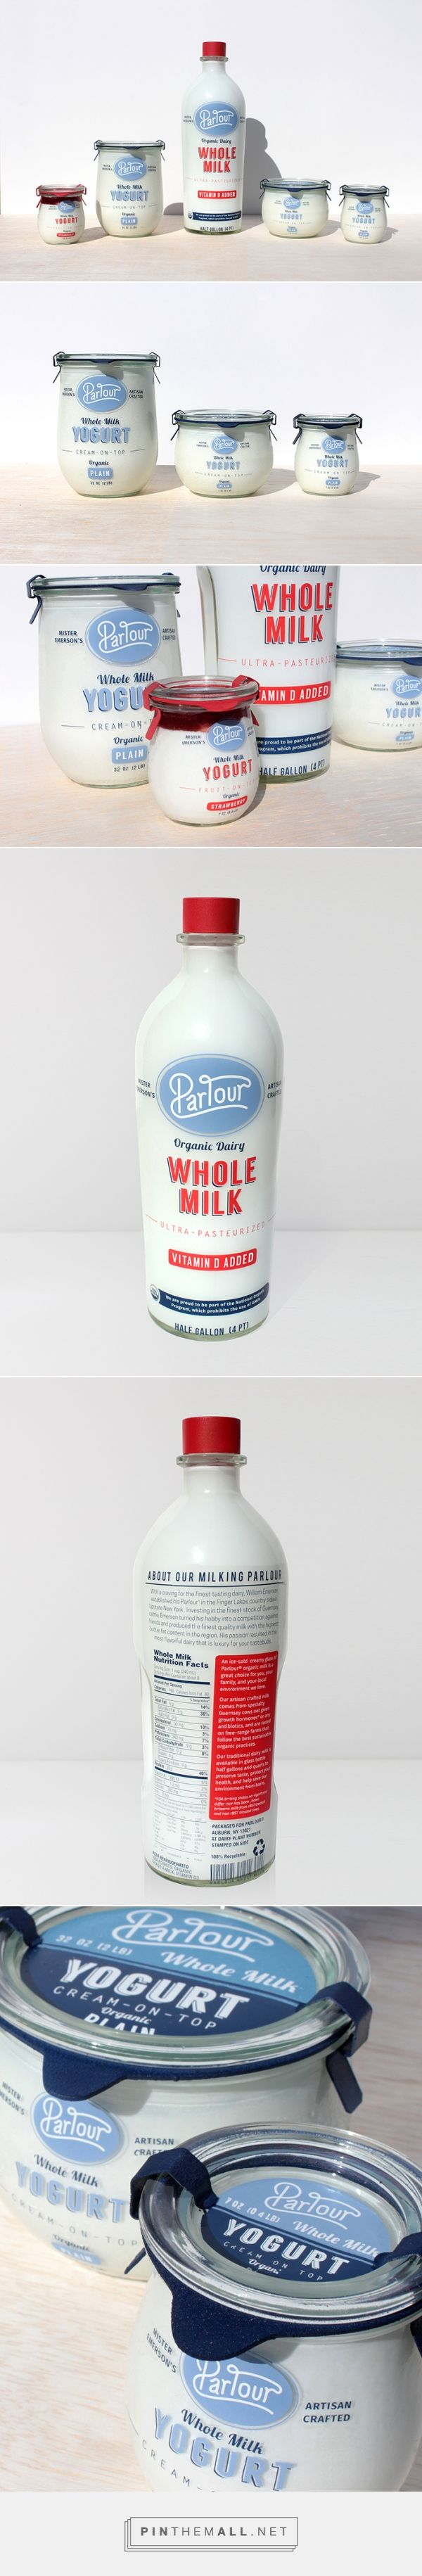 Parlour dairy products by Alex Kinal. Pin curated by #SFields99 #packaging #design